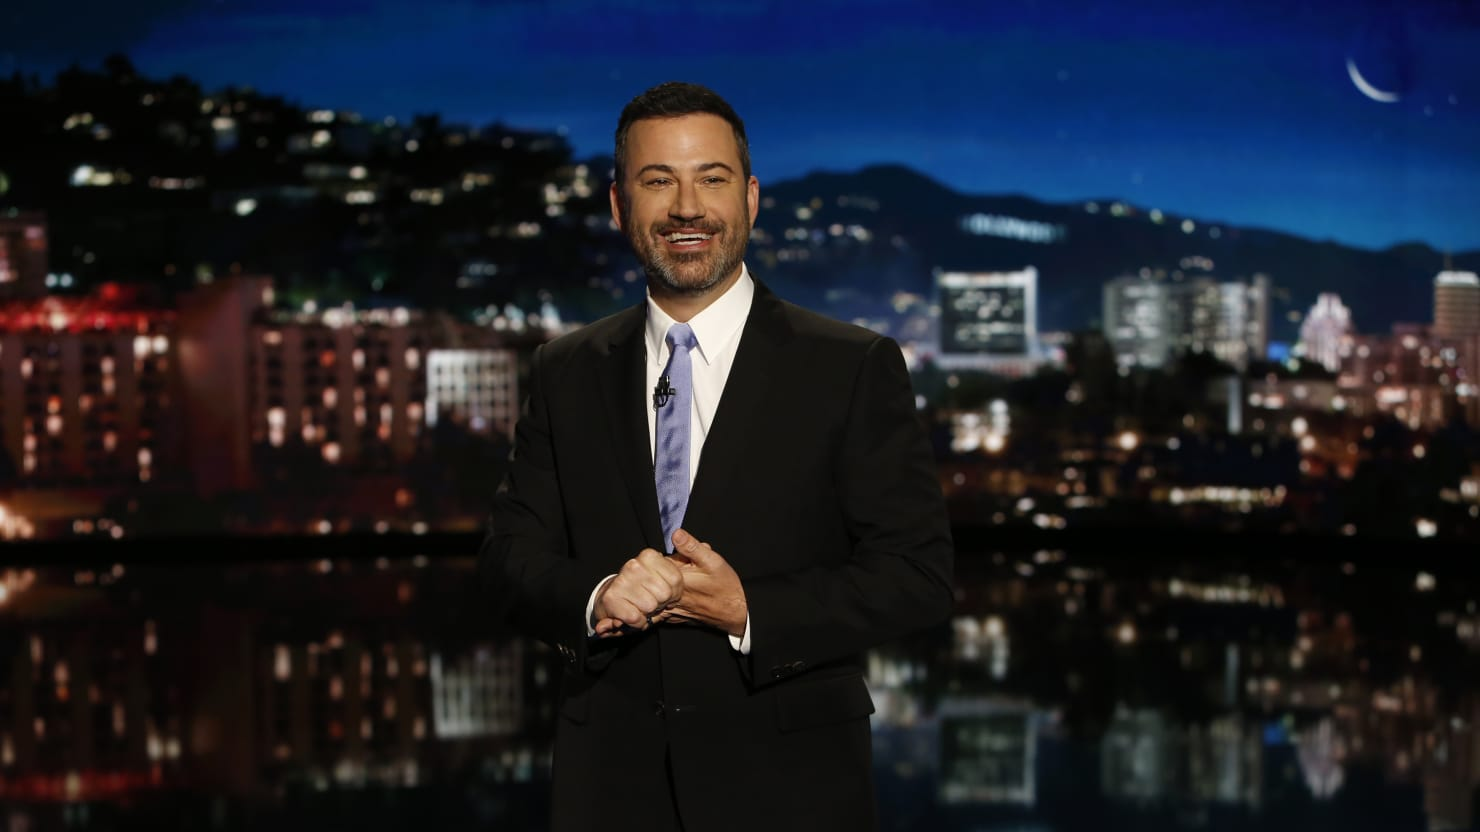 Jimmy Kimmel Mocks Sarah Huckabee Sanders' Excuse for John Kelly's NATO Frustration